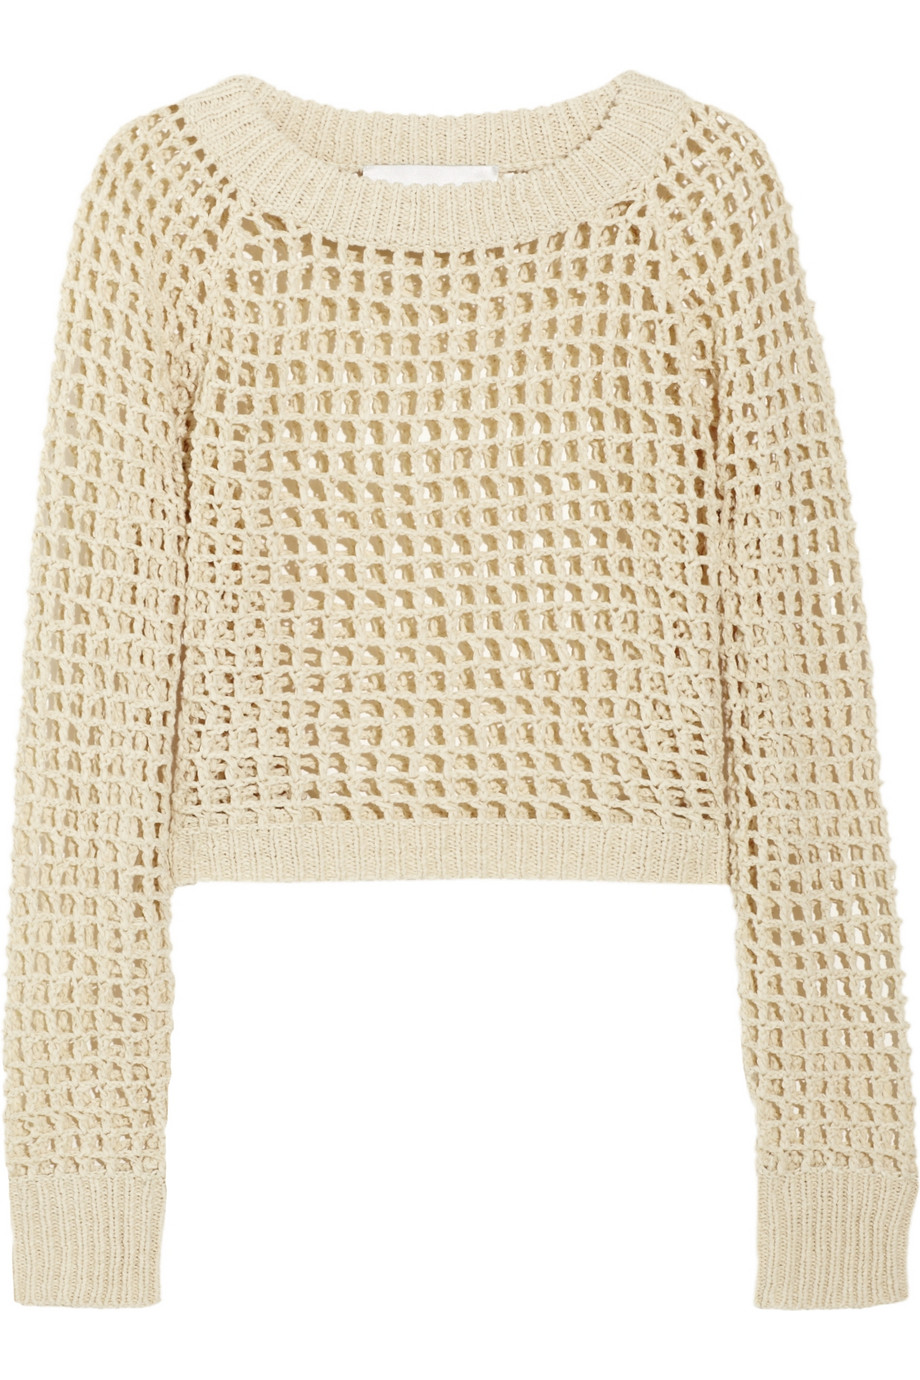 A.l.c. Cropped Open-knit Cotton-blend Sweater in Natural | Lyst